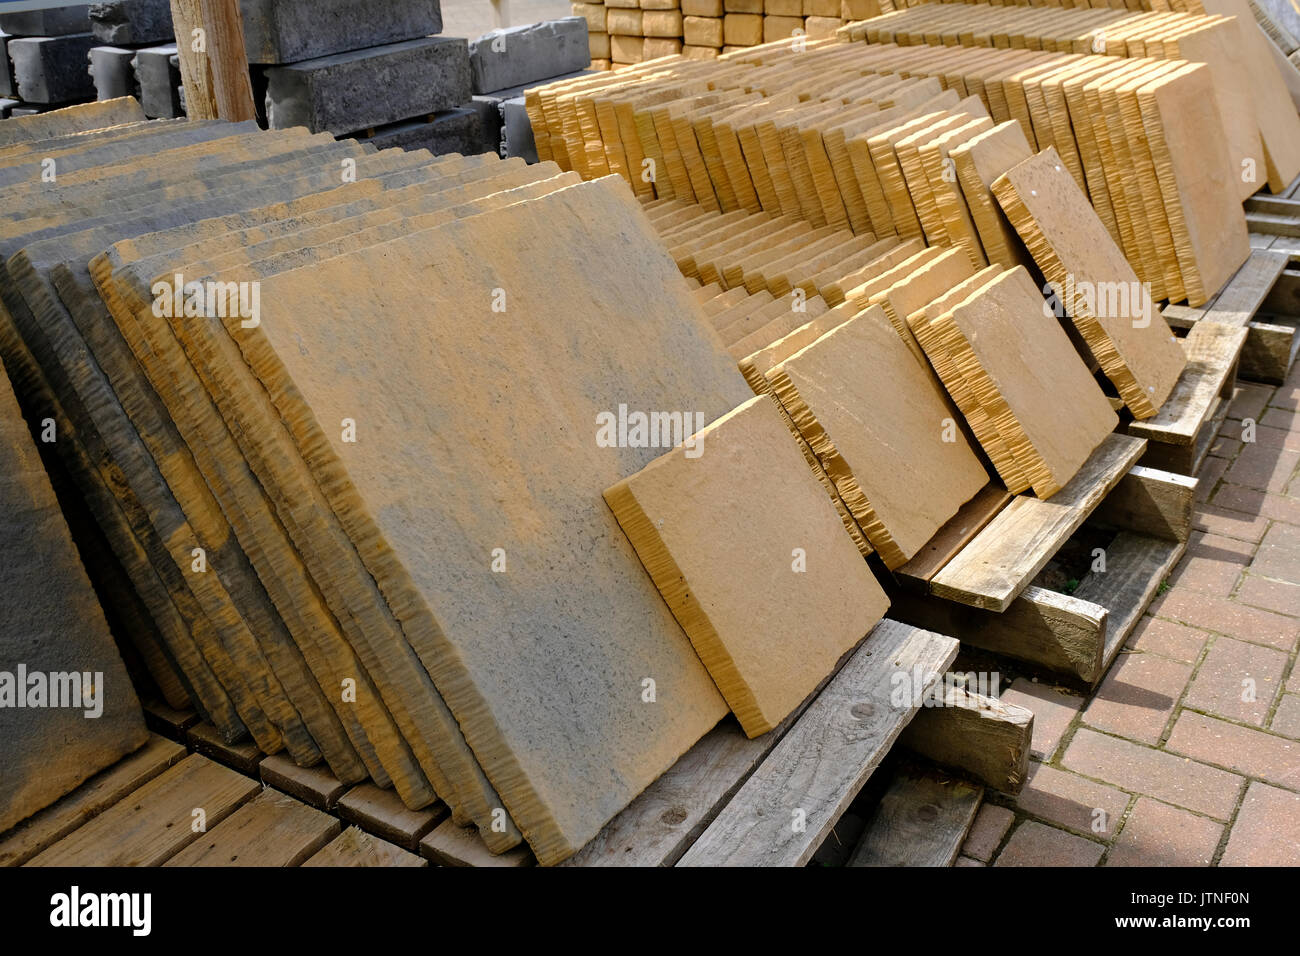 Stacks of paving slabs on sale at an English garden centre - Stock Image